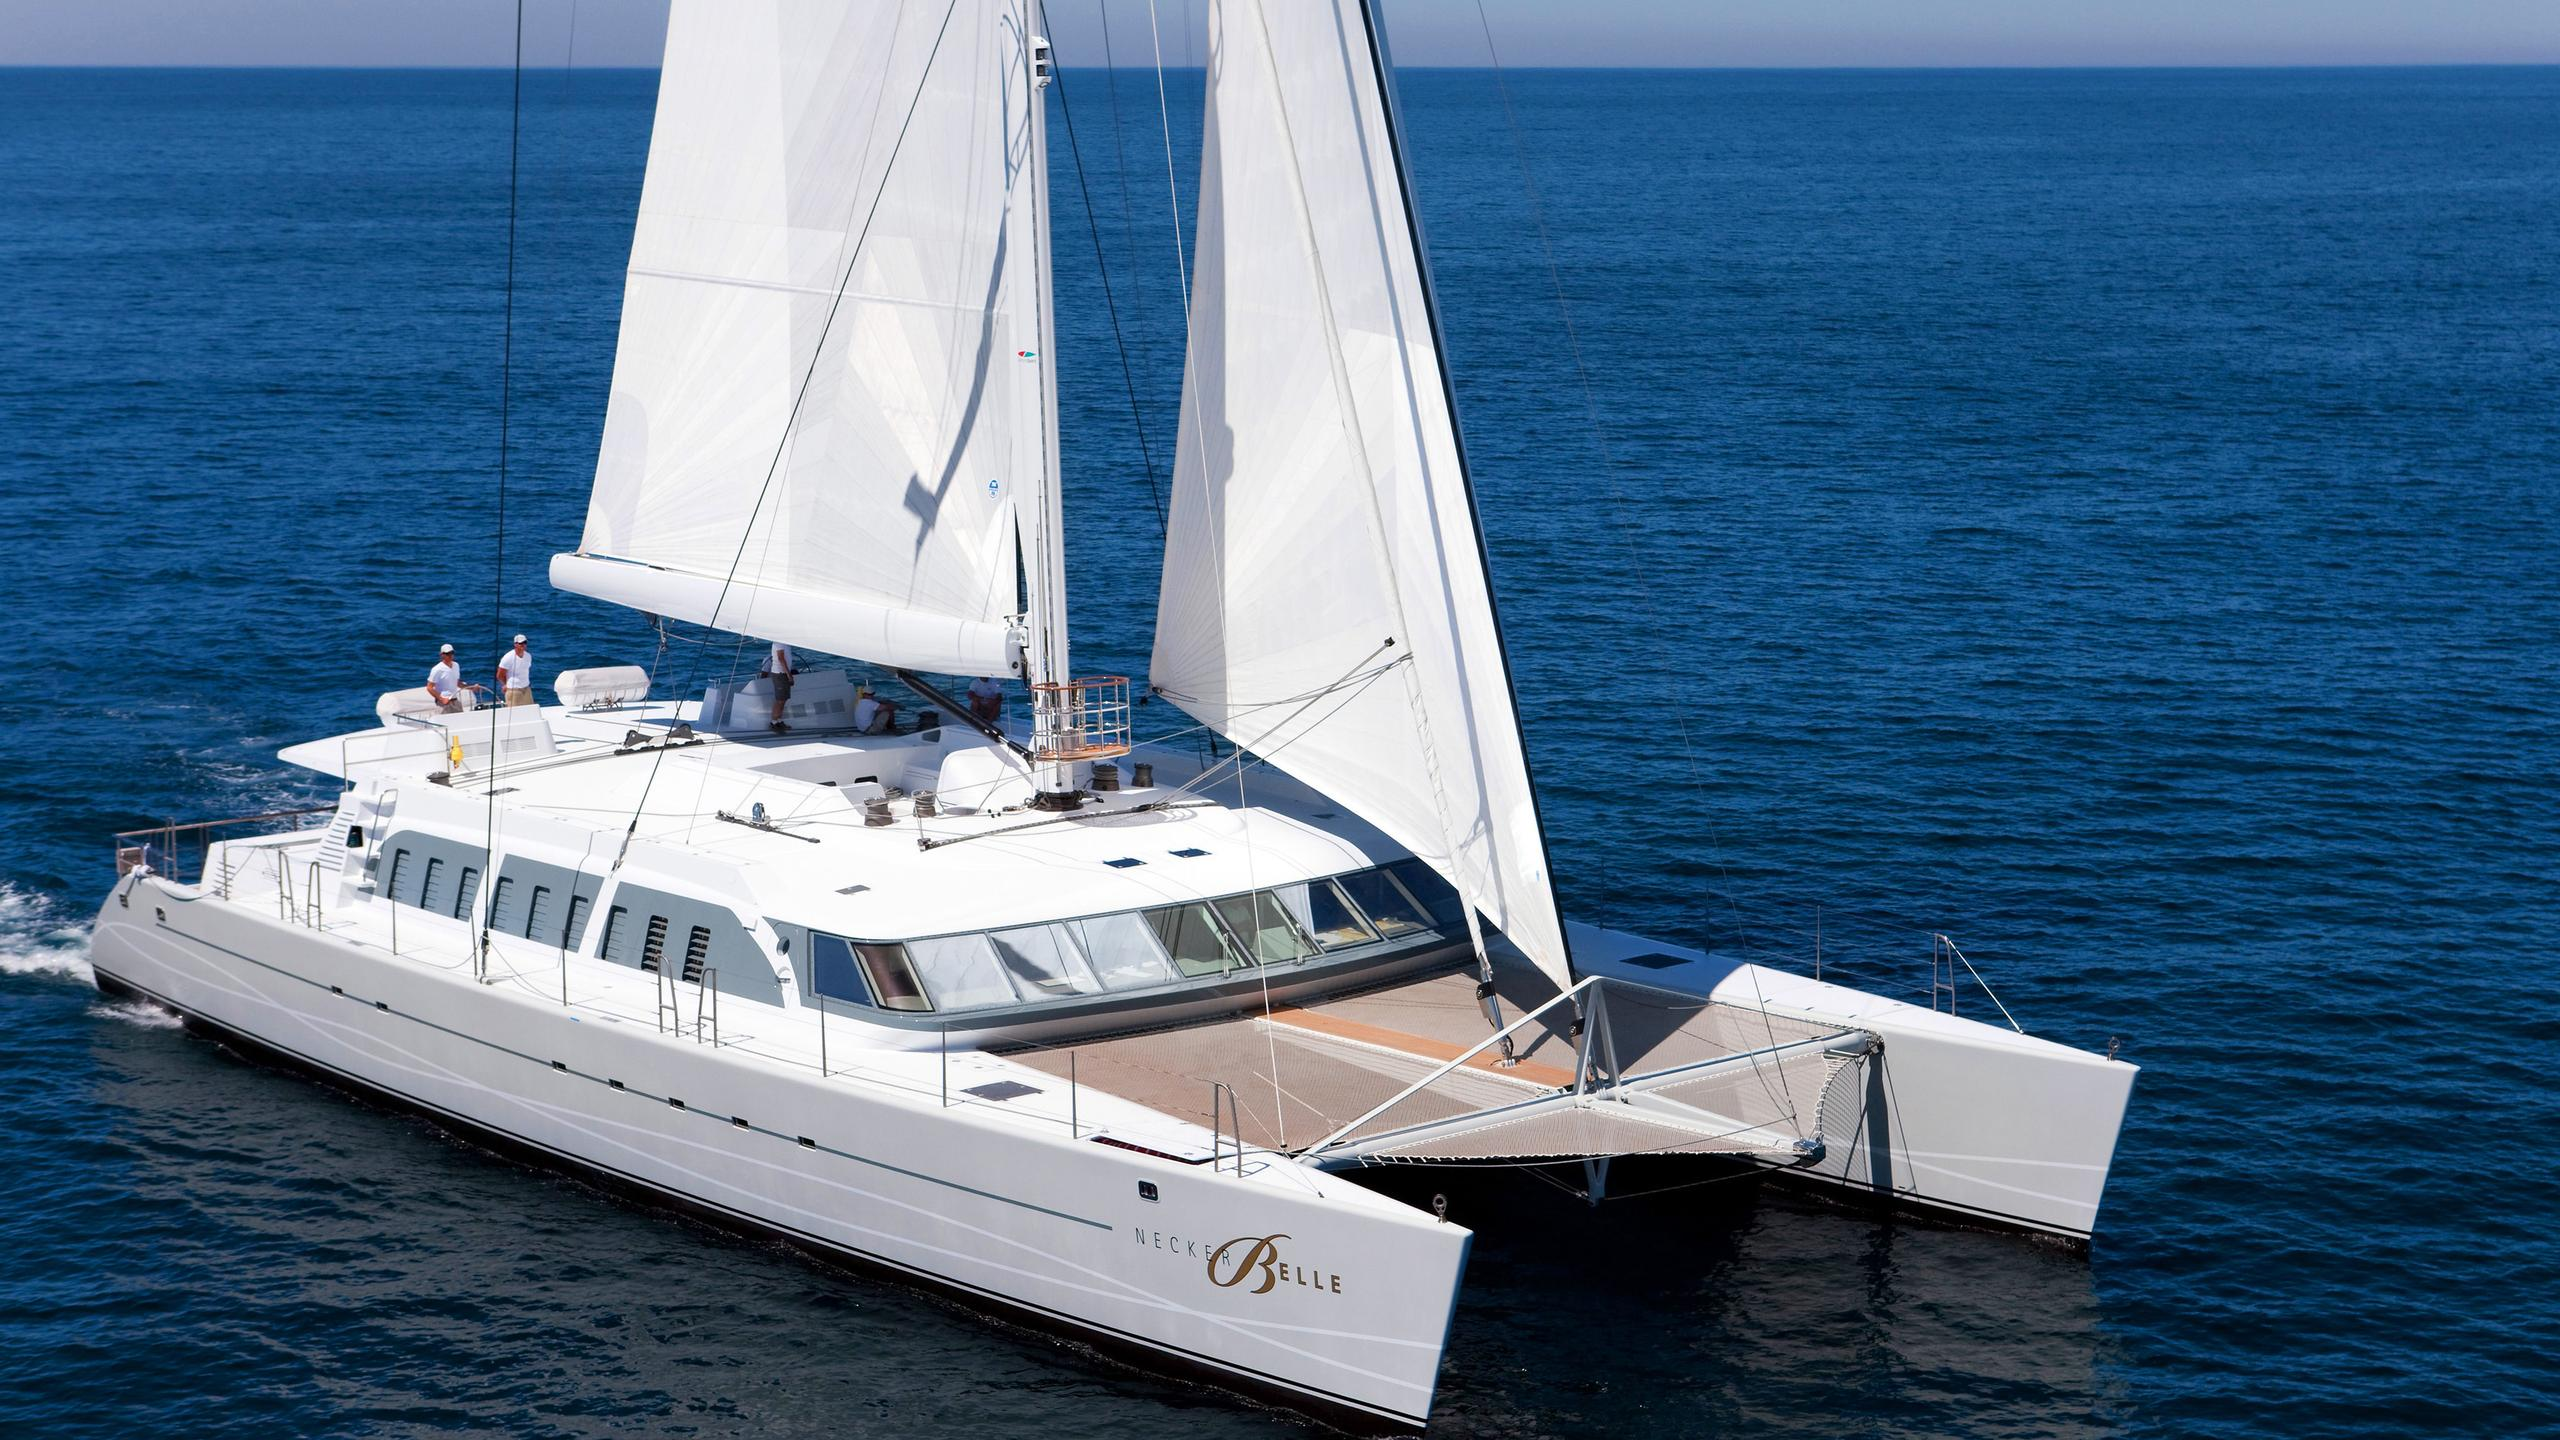 necker-belle-yacht-for-sale-profile